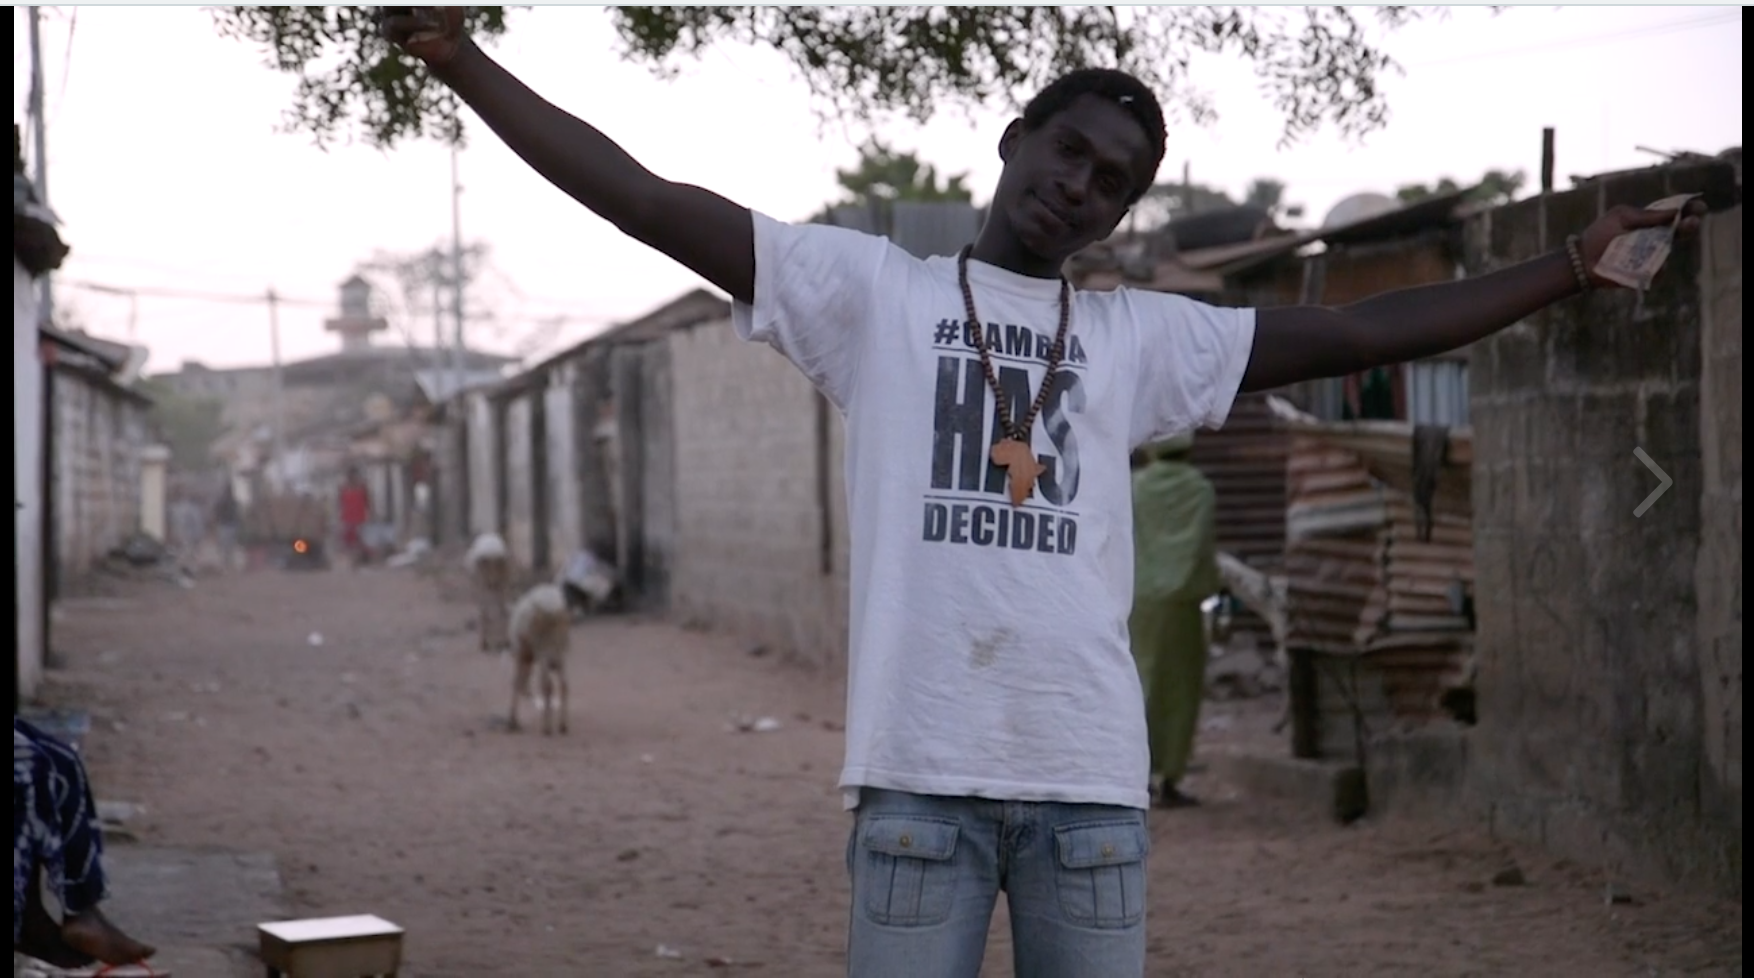 """Vimeo - Watch """"We Never Gave Up: Stories of Courage in Gambia"""" - trailer for Amnesty International"""